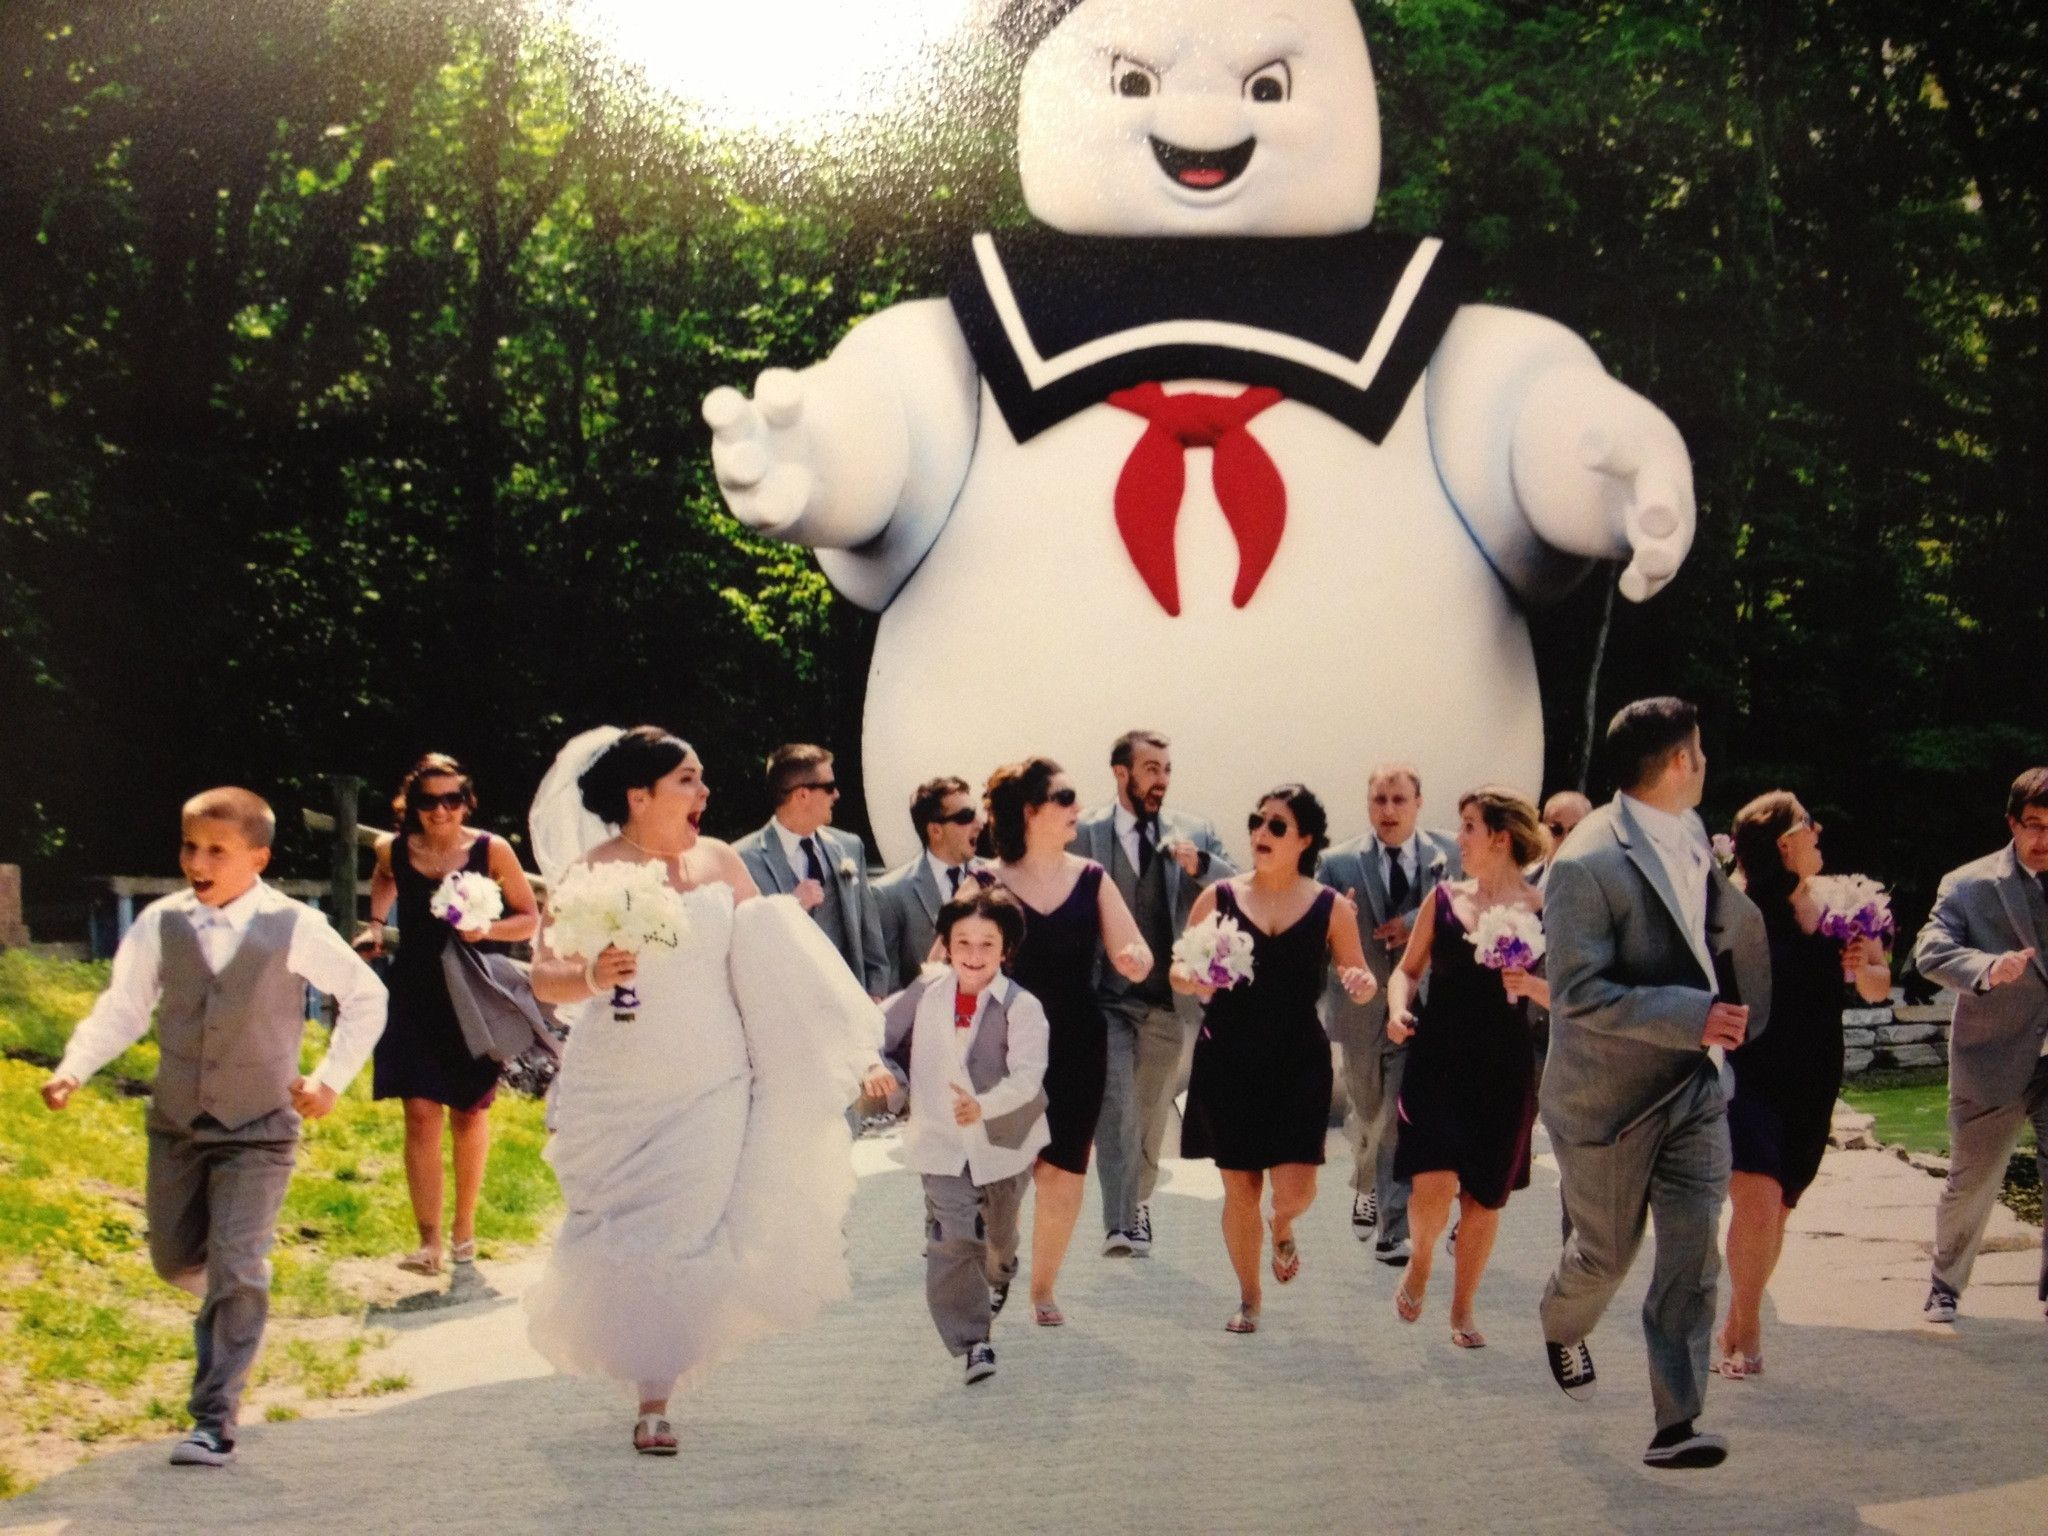 Stay Puft marshmallow man attacks the wedding party! #Ghostbusters